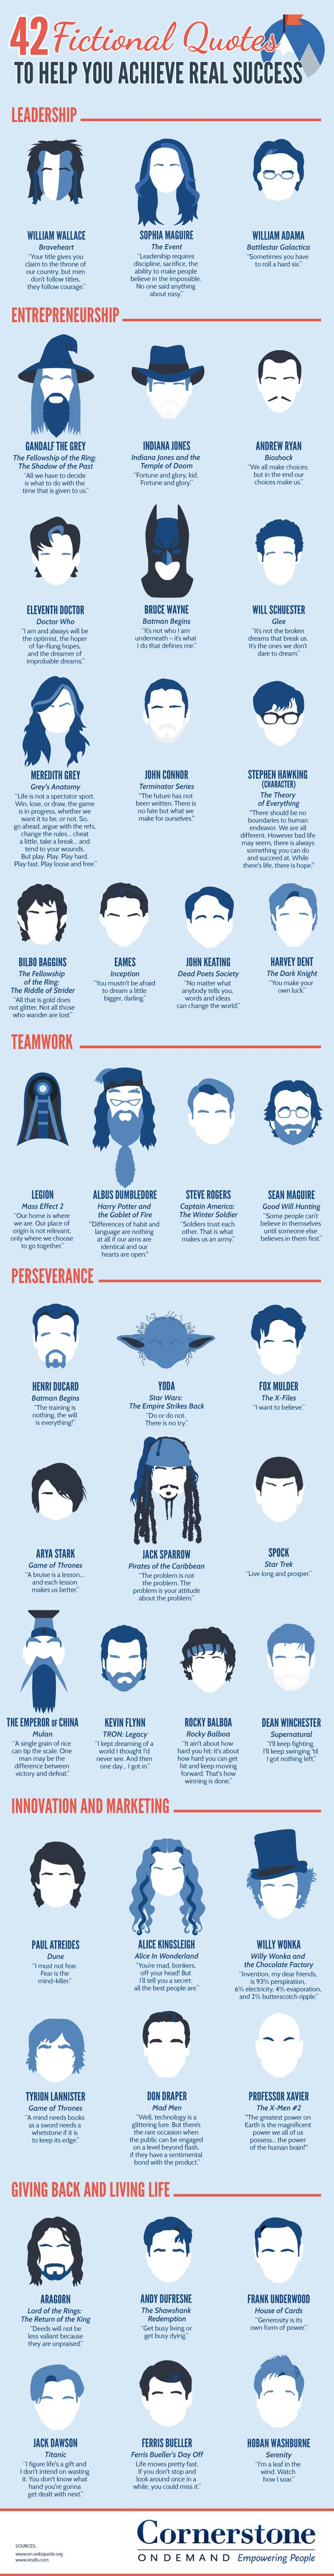 42 Fictional Quotes to Help You Achieve Real Success [by CornerstoneOnDemand -- via #tipsographic]. More at tipsographic.com